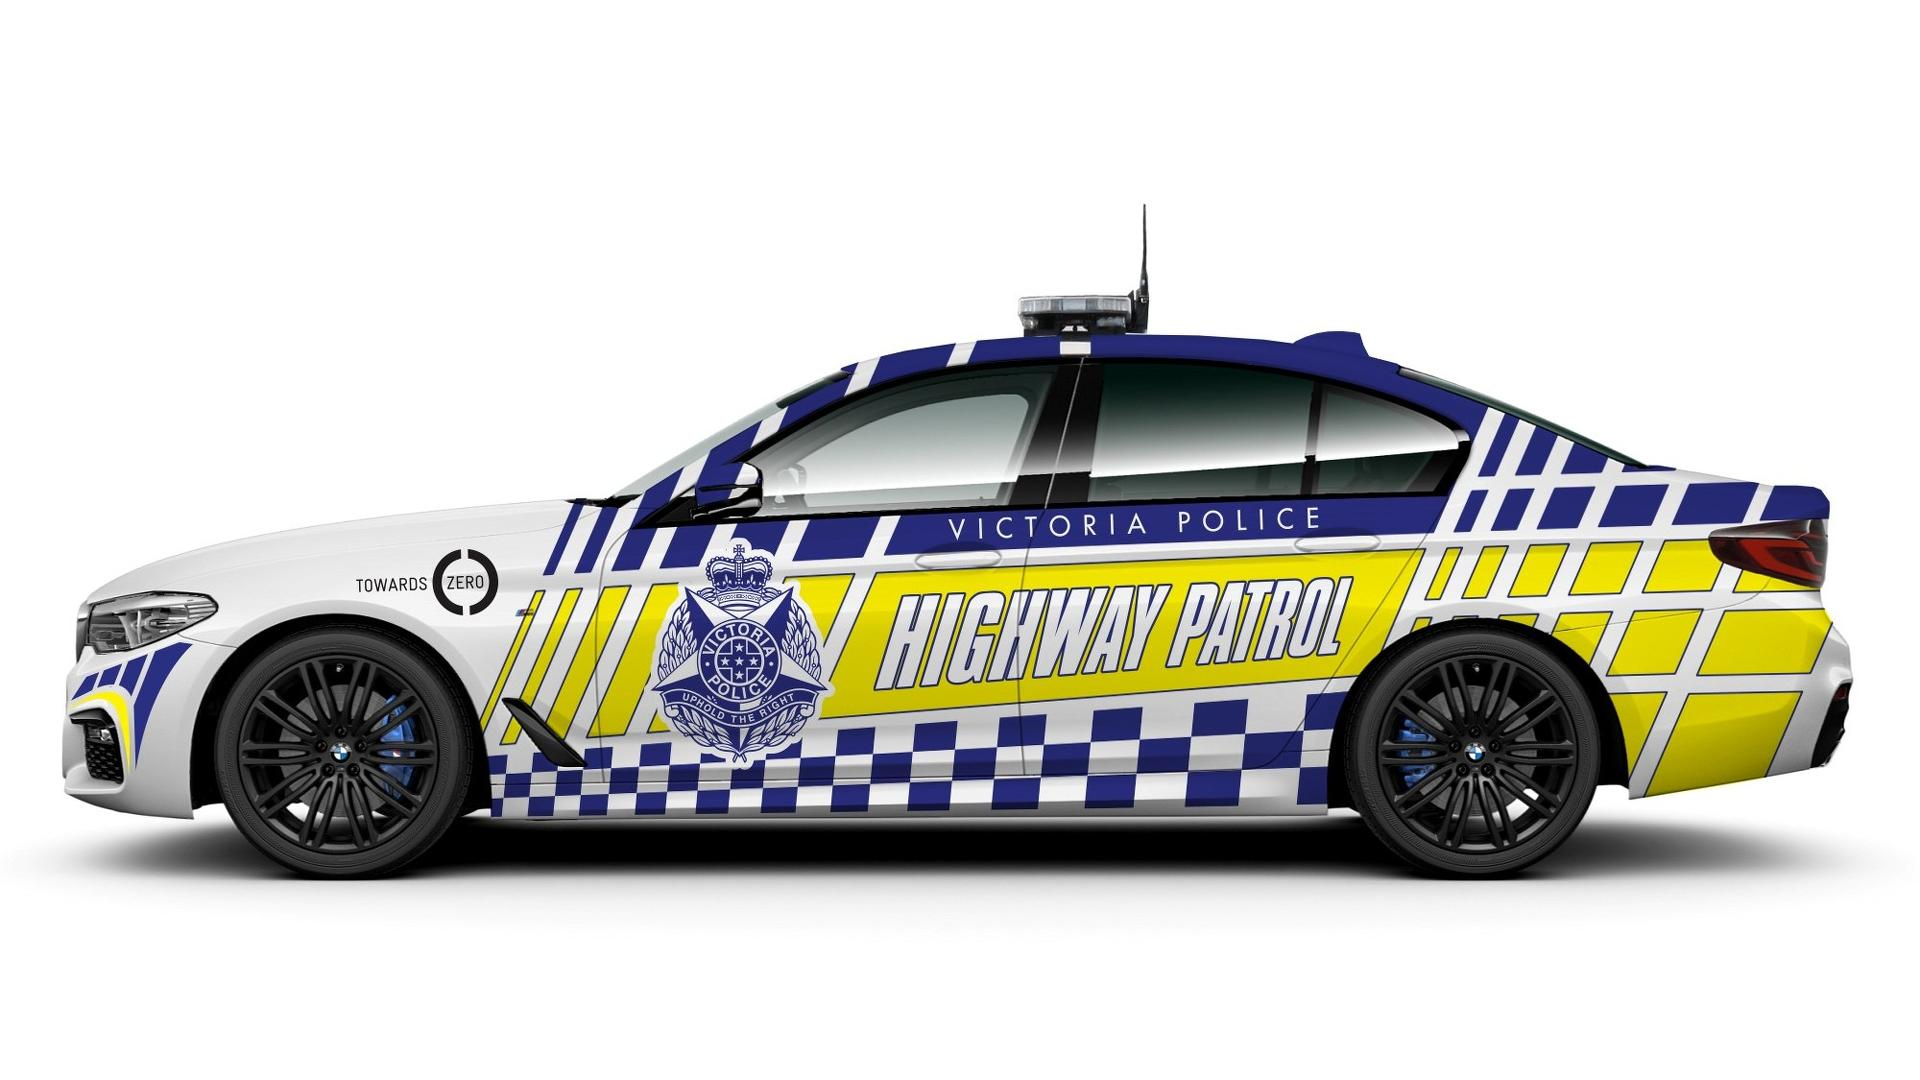 2017 Bmw 530d Police Cars Yes In Victoria Australia